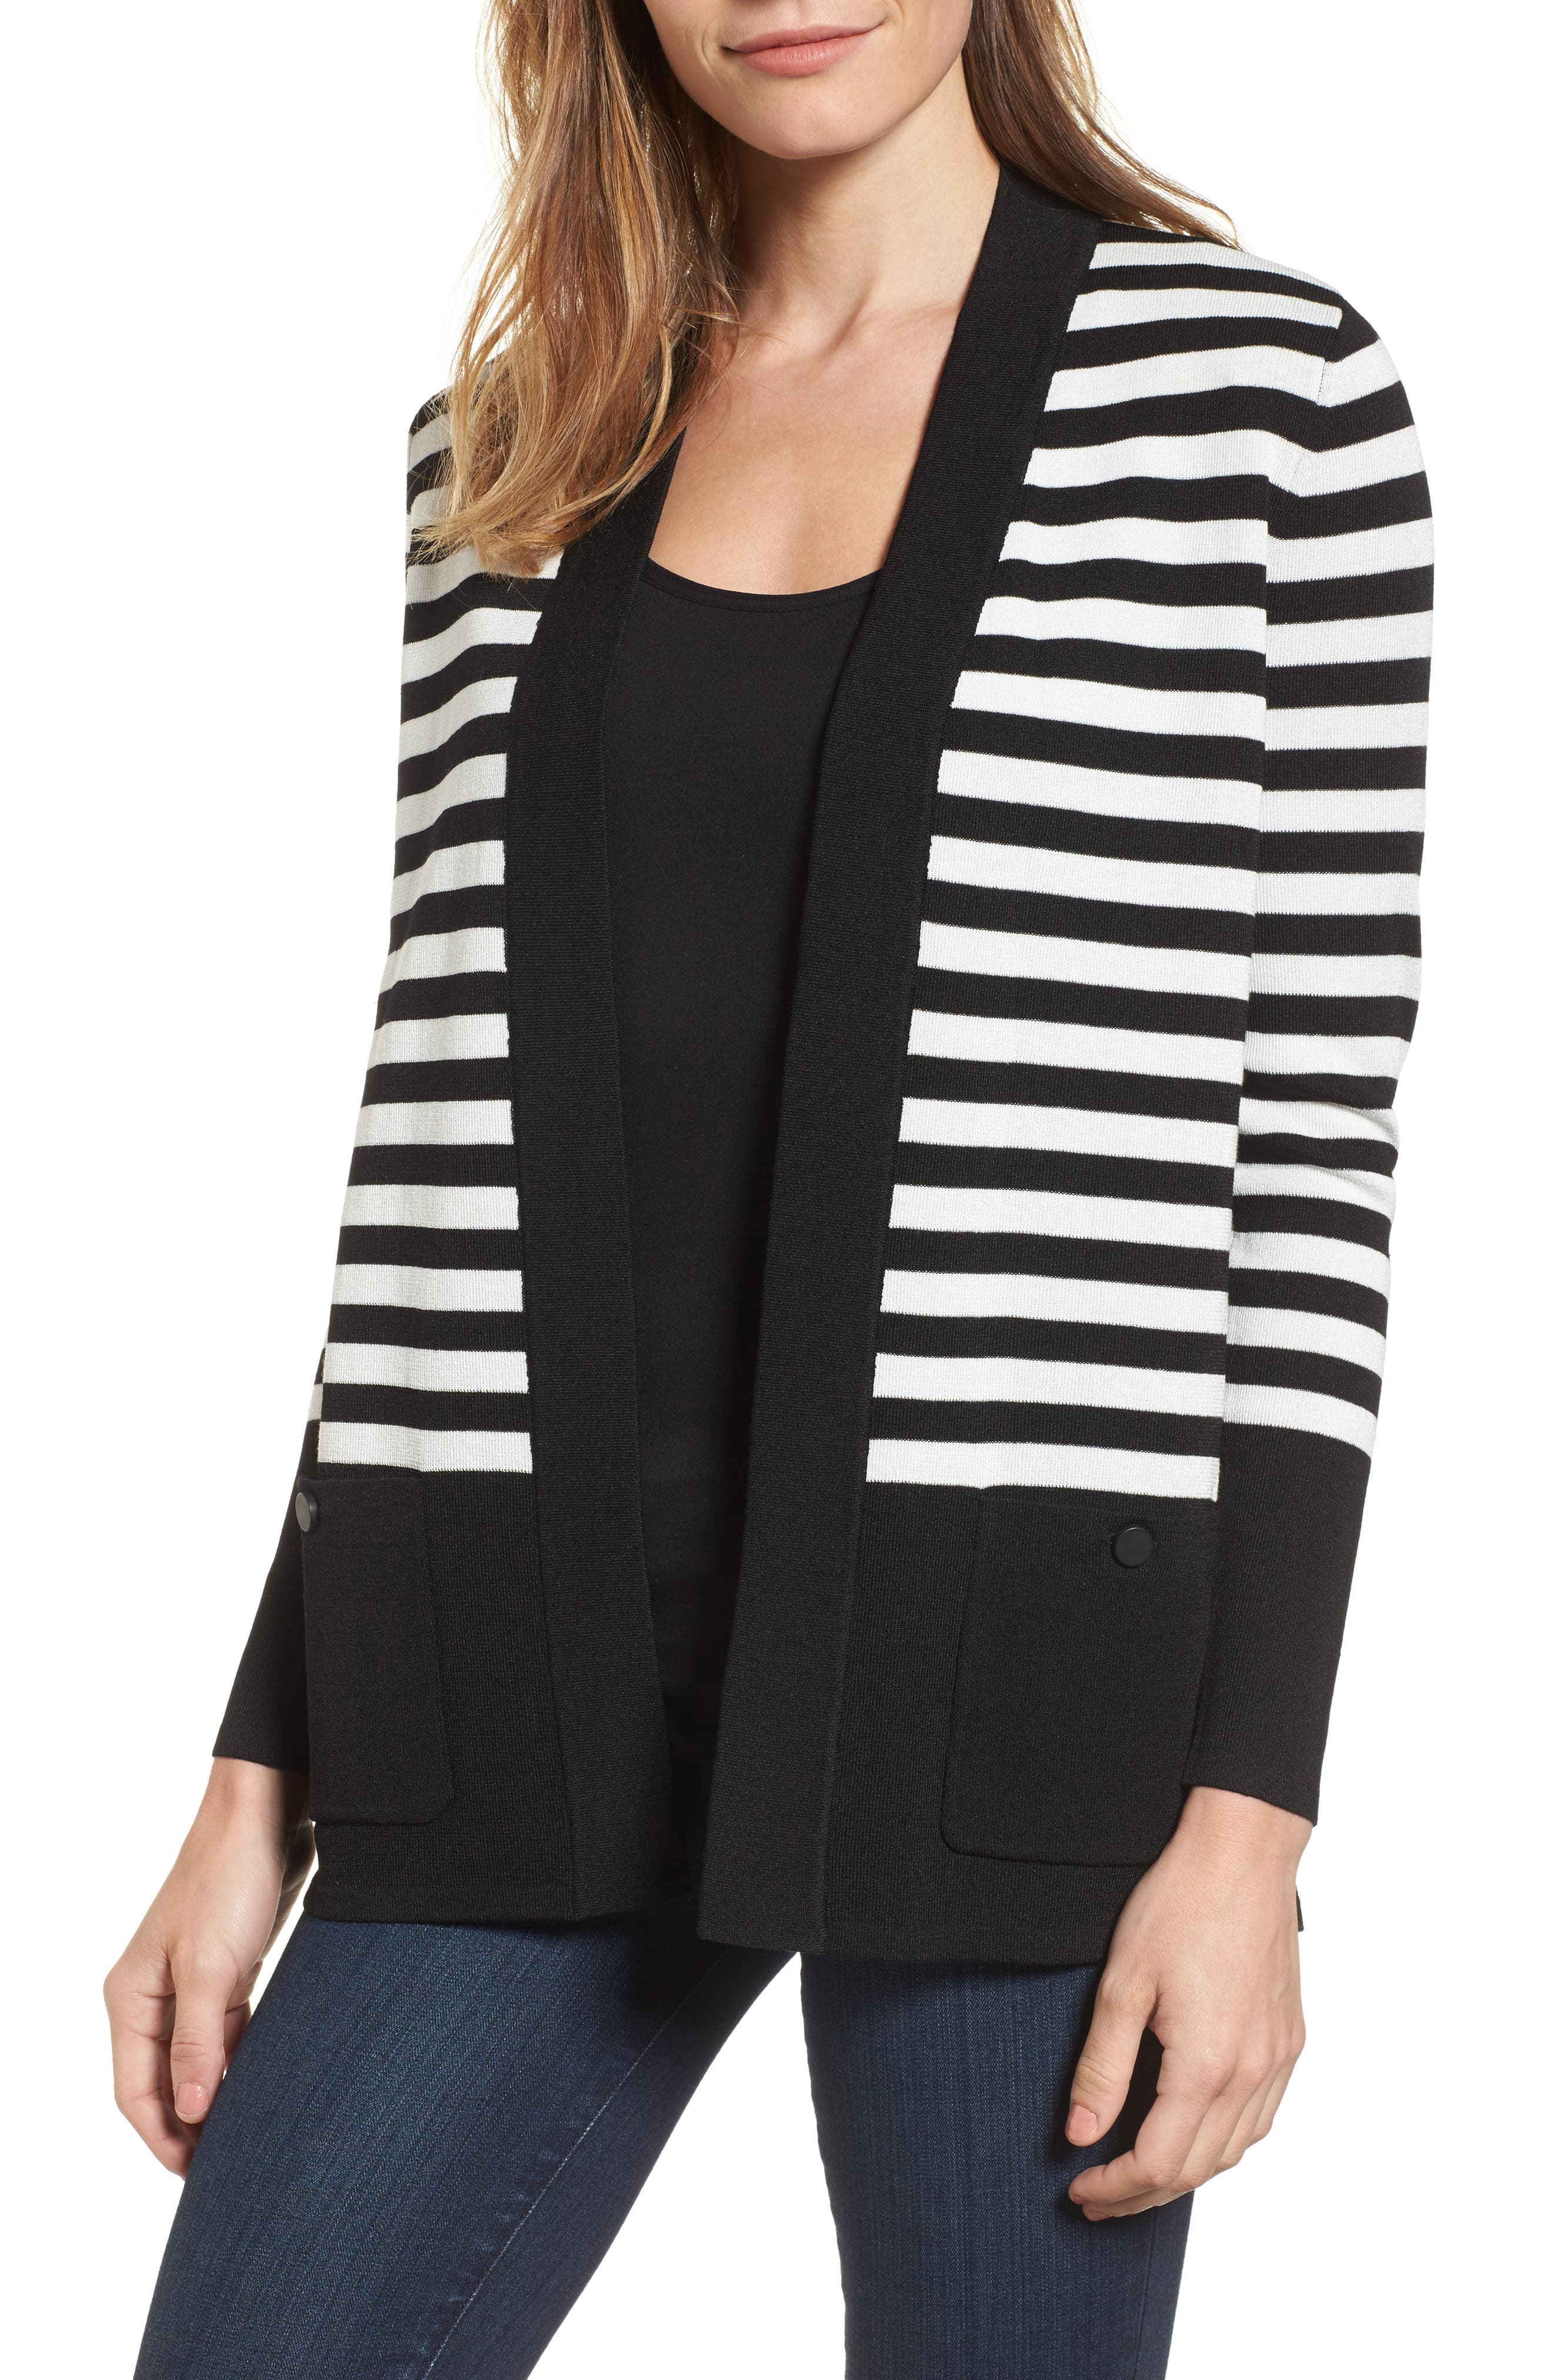 ANNE KLEIN Patch Pocket Cardigan in Black/ White